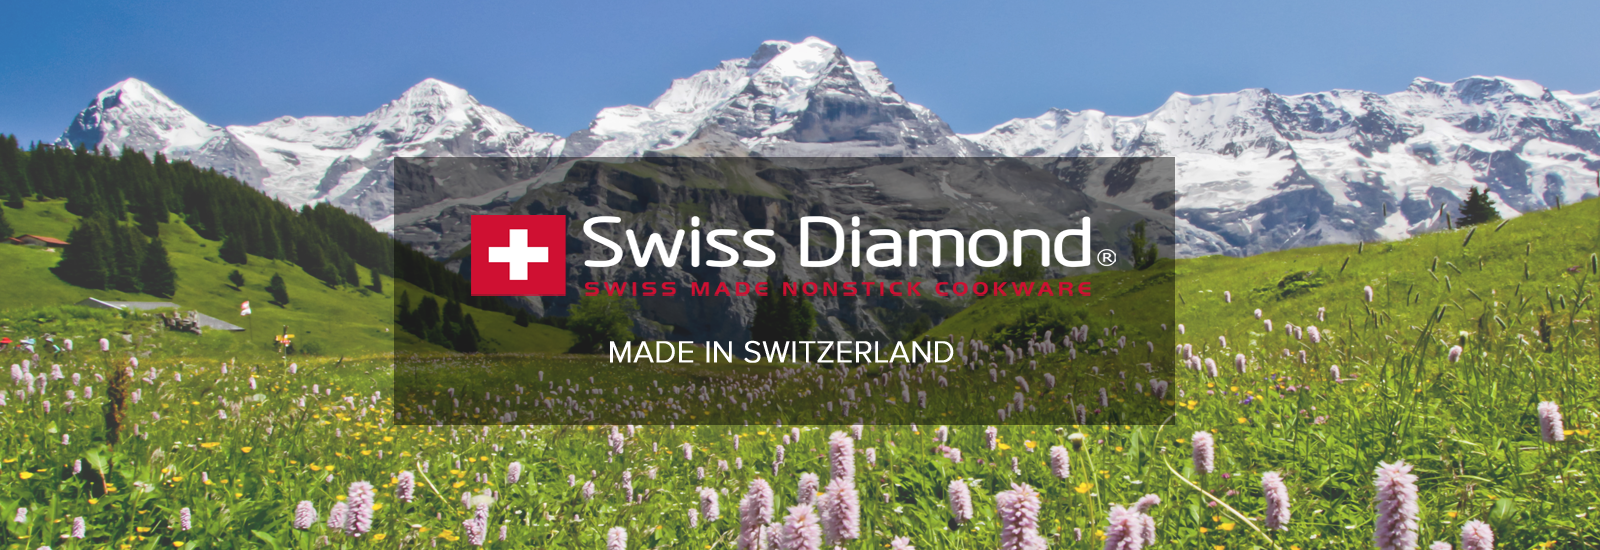 Swiss Diamond Banner